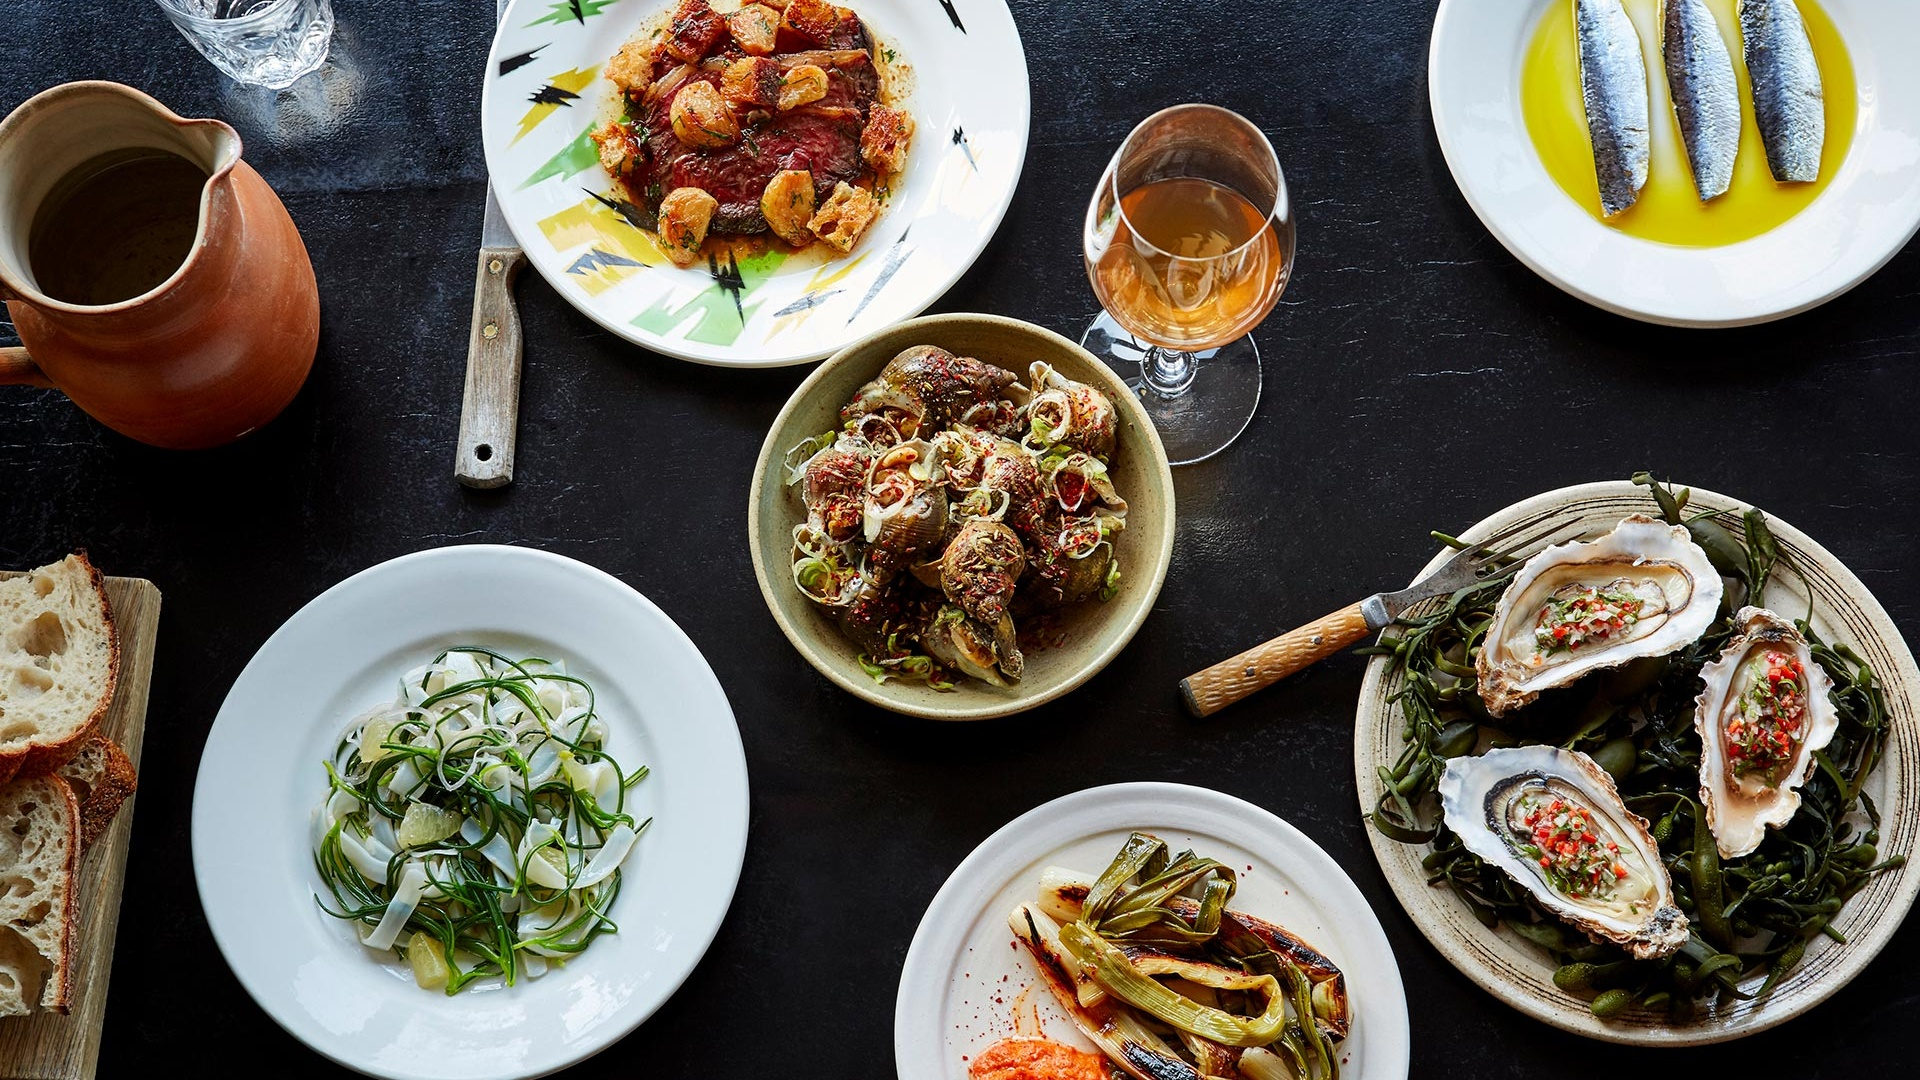 A selection of dishes at Westerns Laundry. Photography by Patricia Niven